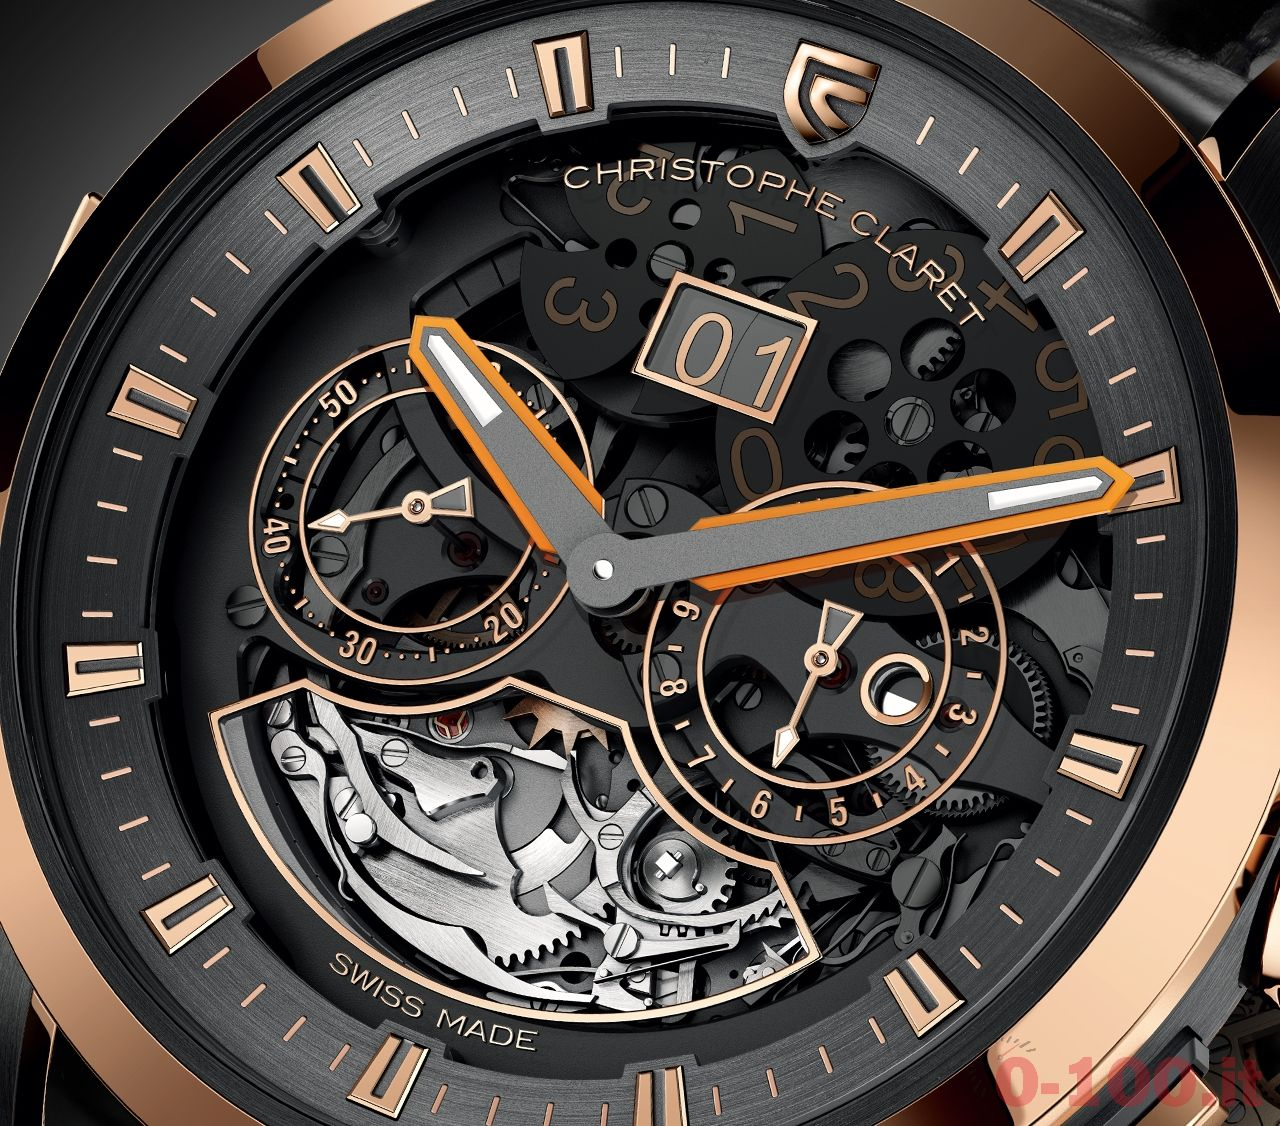 christophe-claret-allegro-limited-edition-prezzo-price_0-100_4